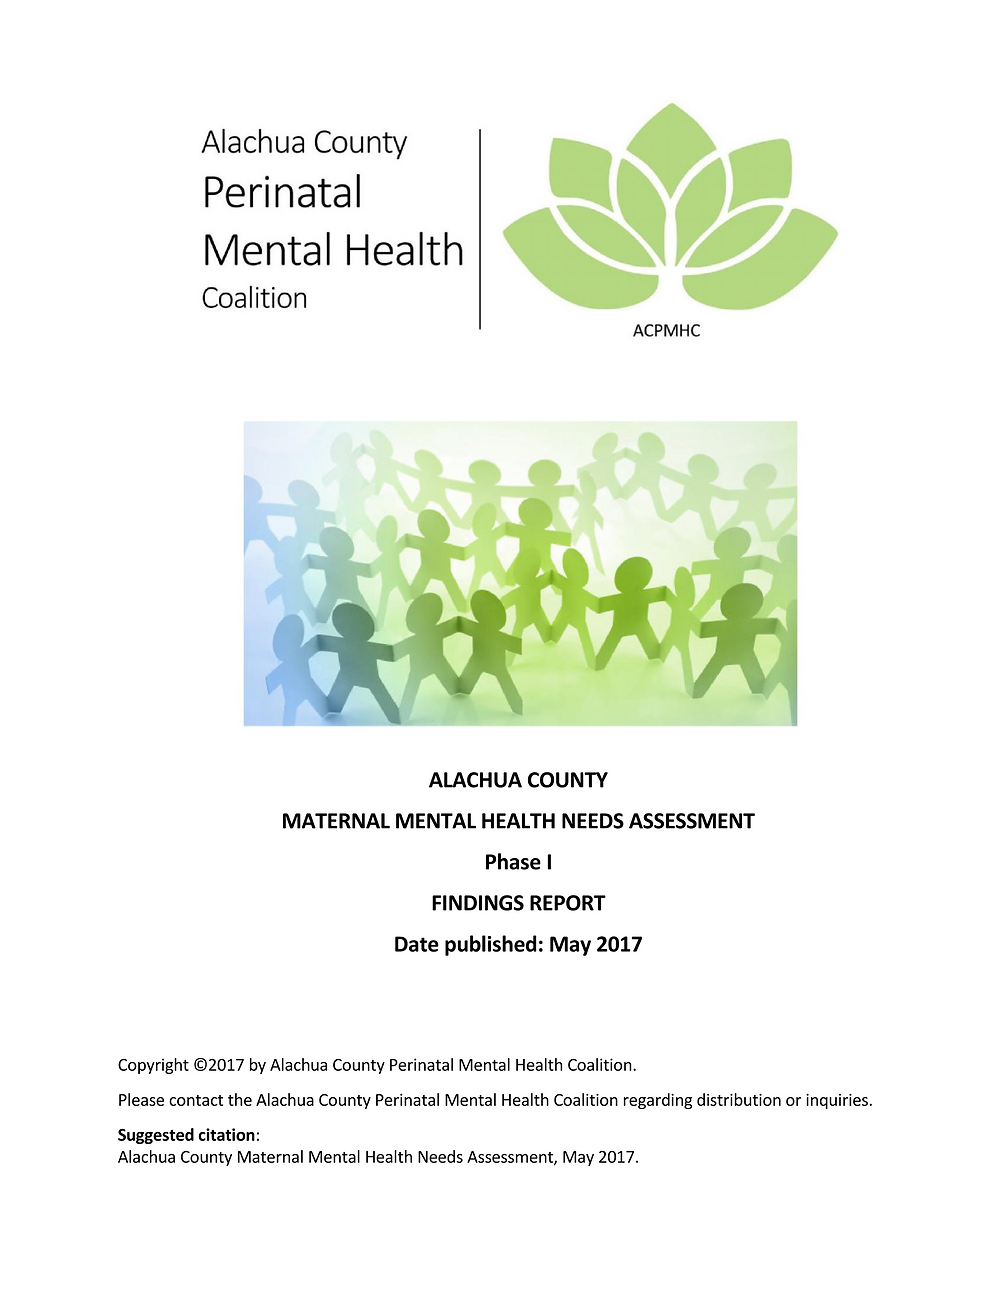 2017 MMH Findings Report Alachua County